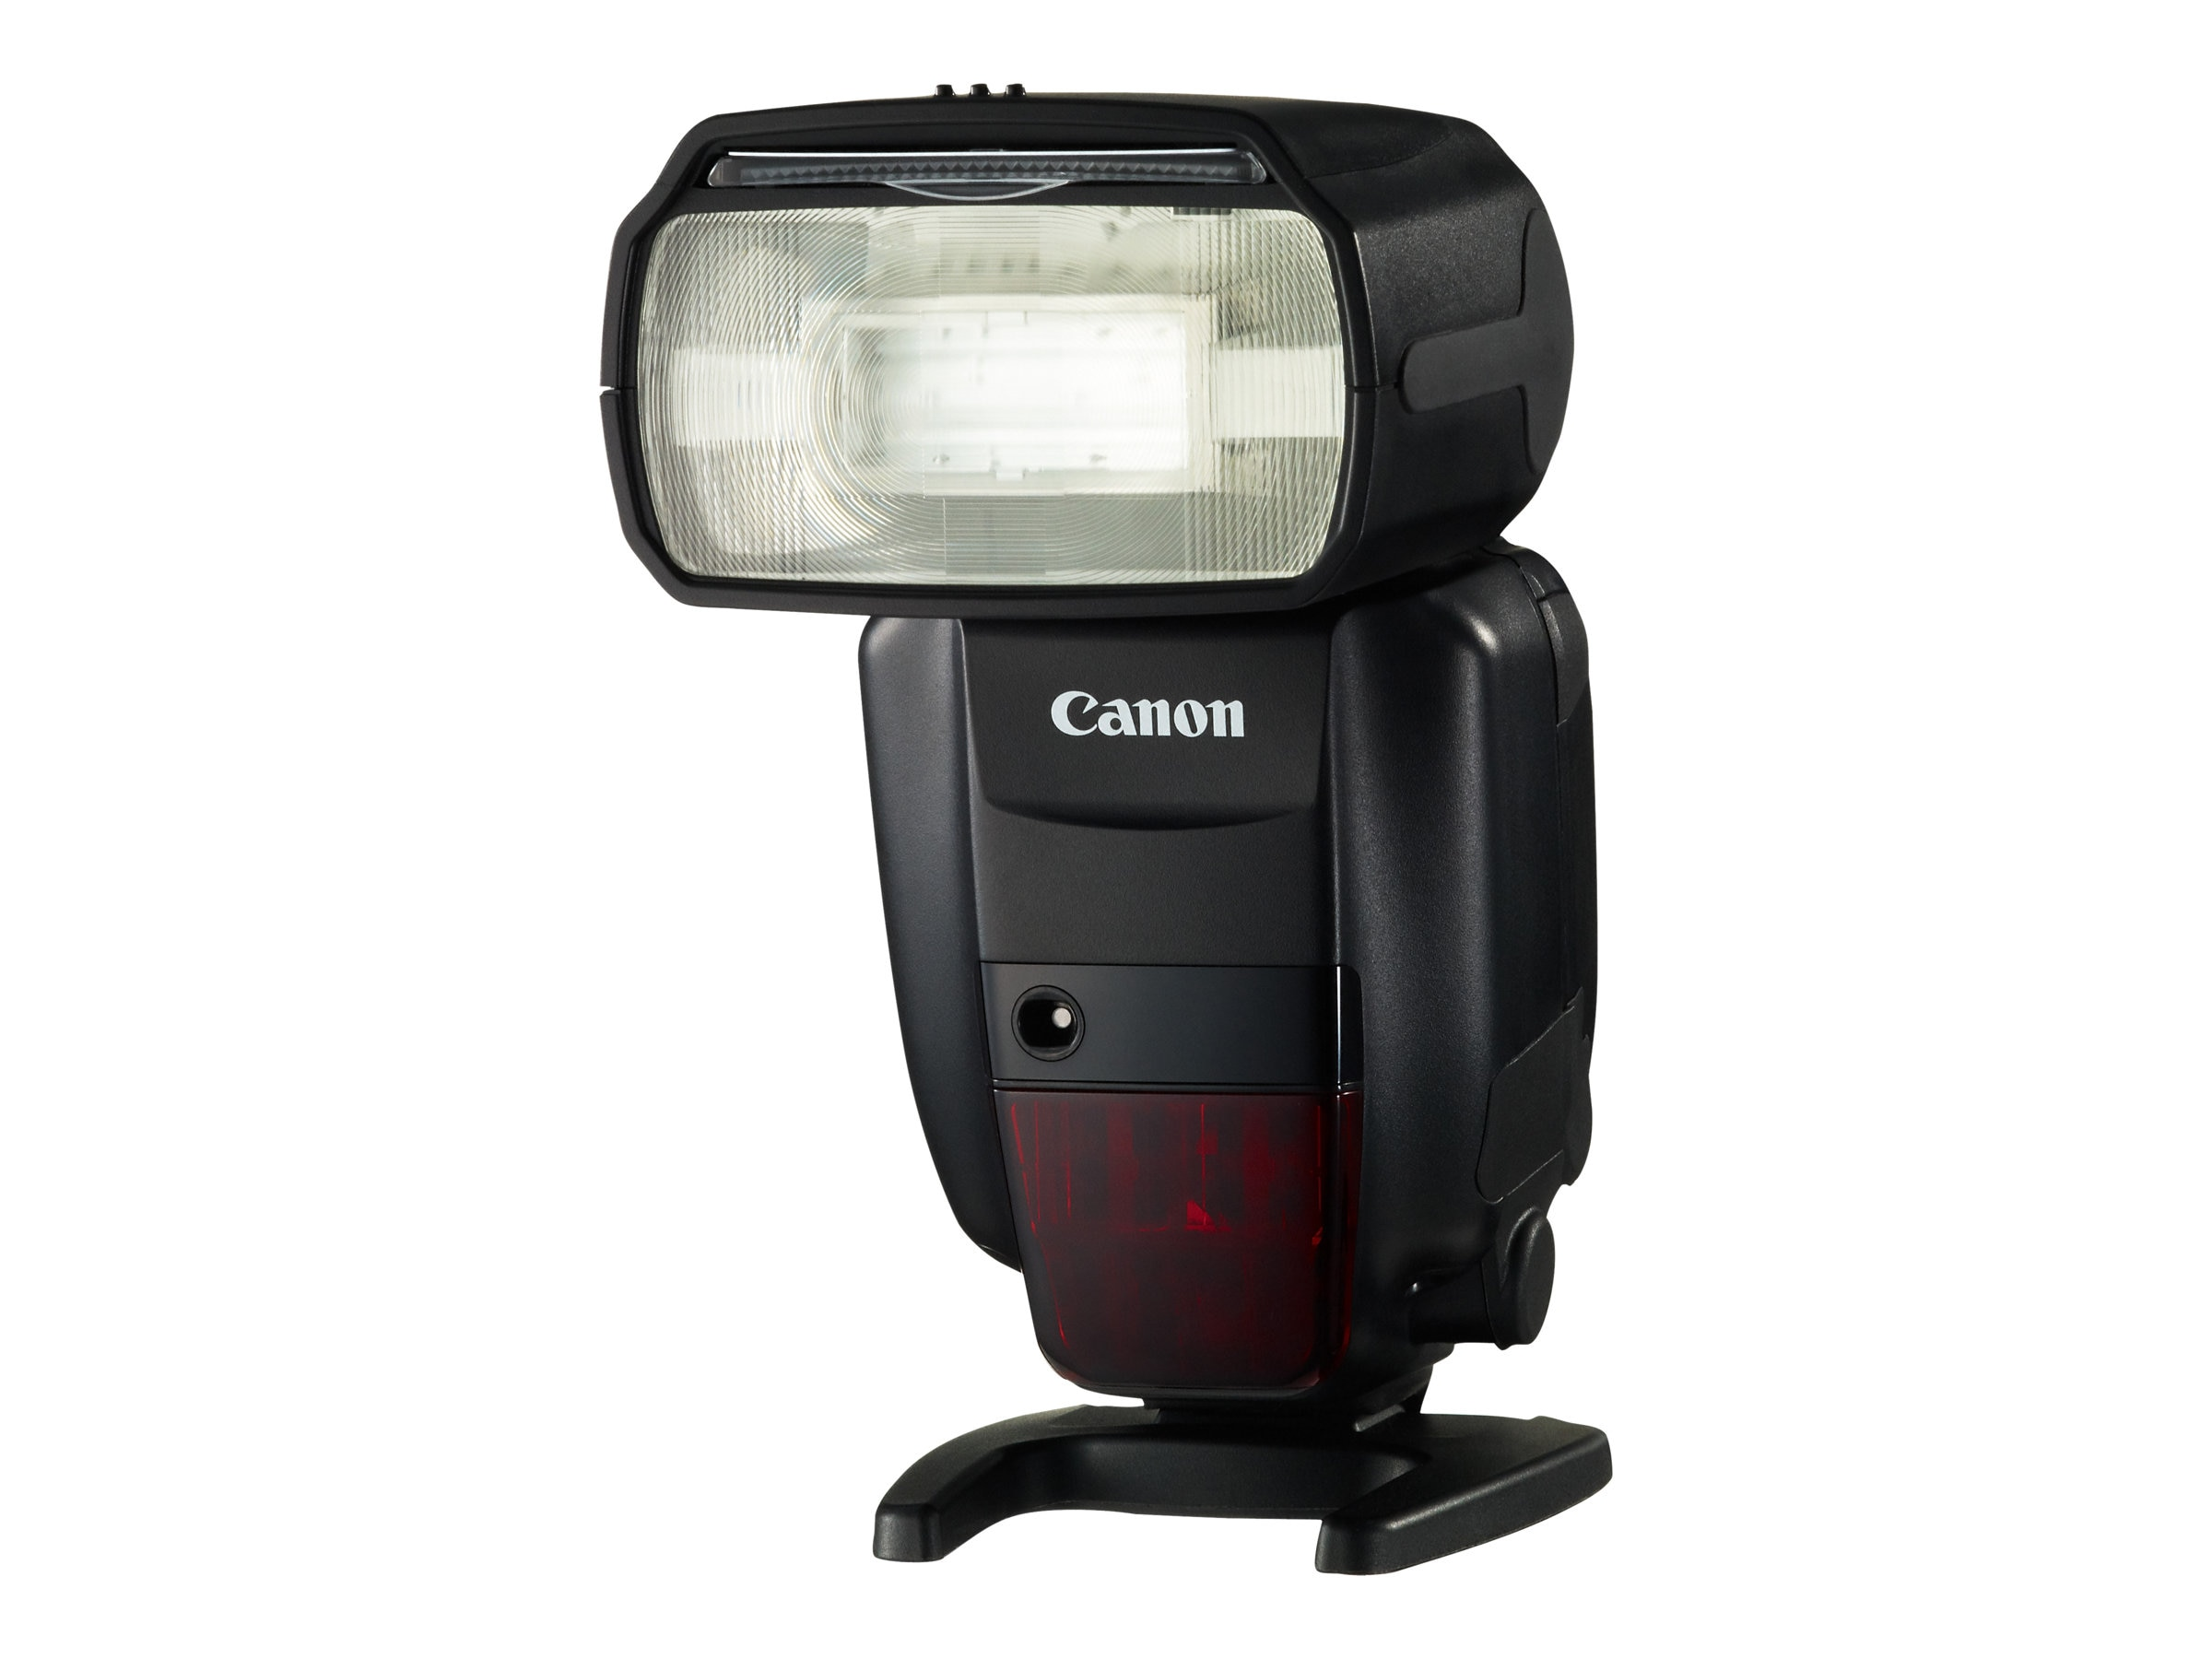 Canon Speedlite 600EX-RT Wireless Radio Multiple Flash System ($549.99-$50 IR = $499.99 Ends 12.31.13), 5296B002, 13778428, Camera & Camcorder Accessories